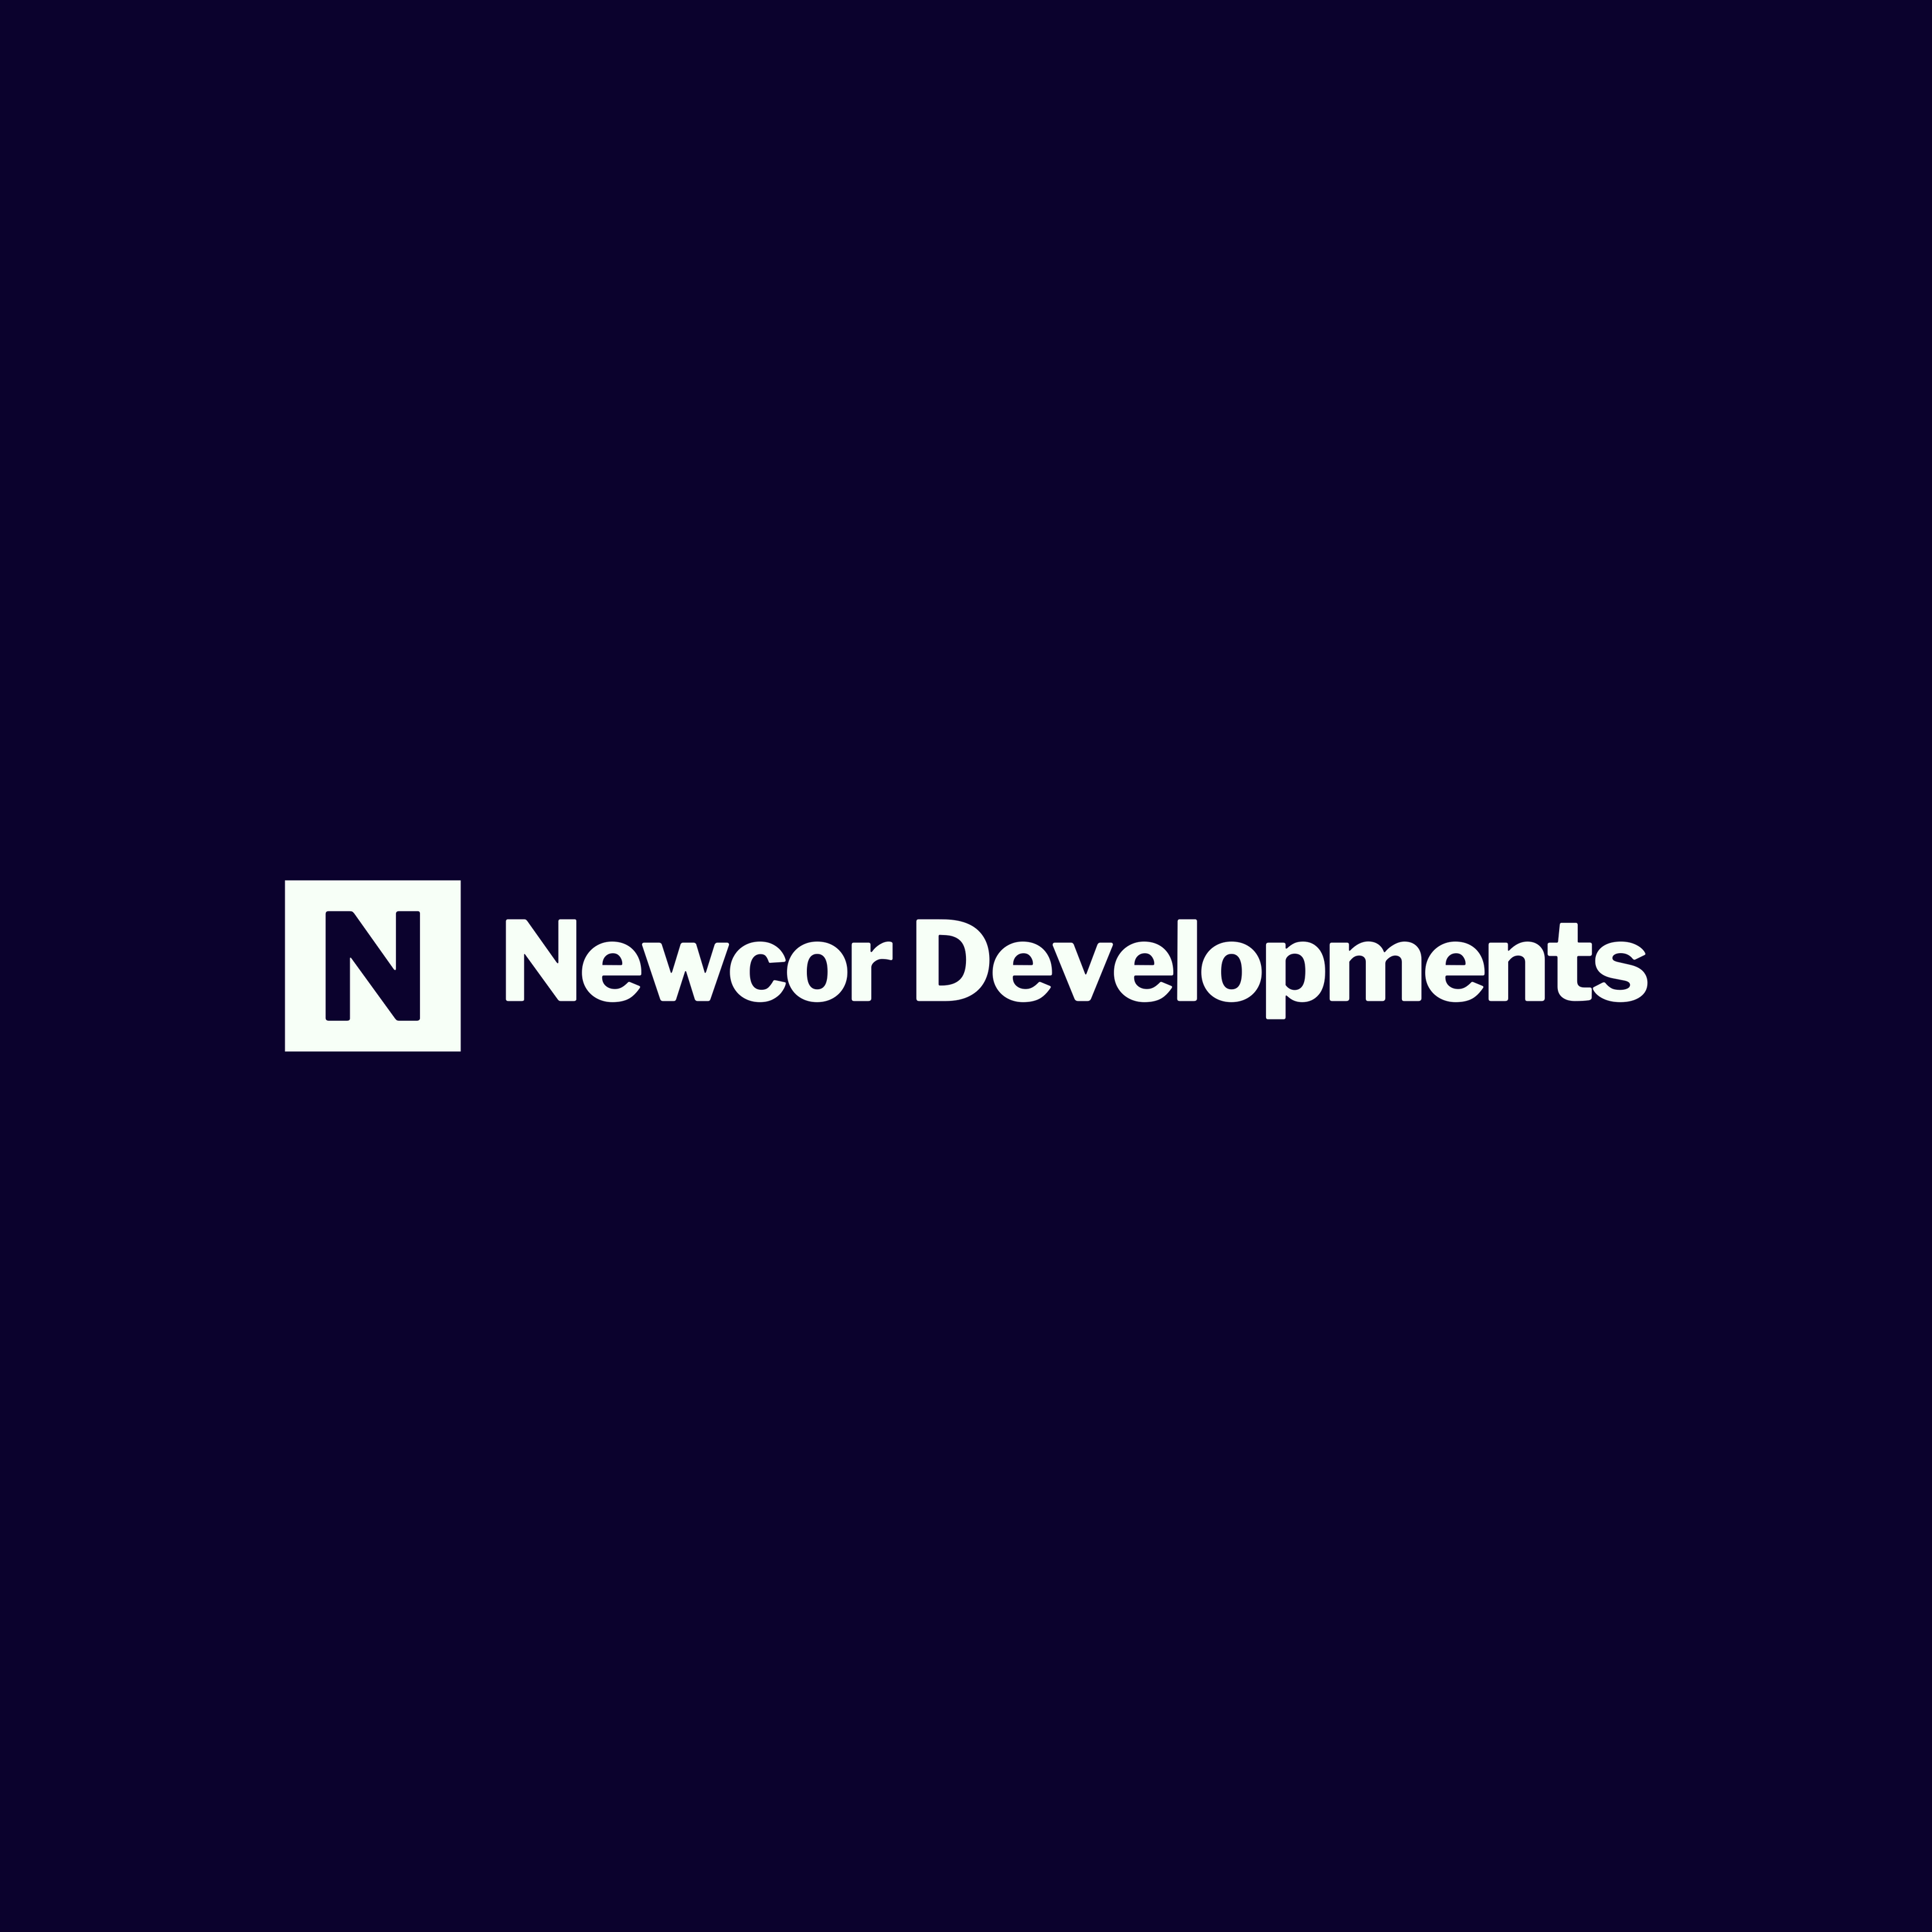 Newcor Developments